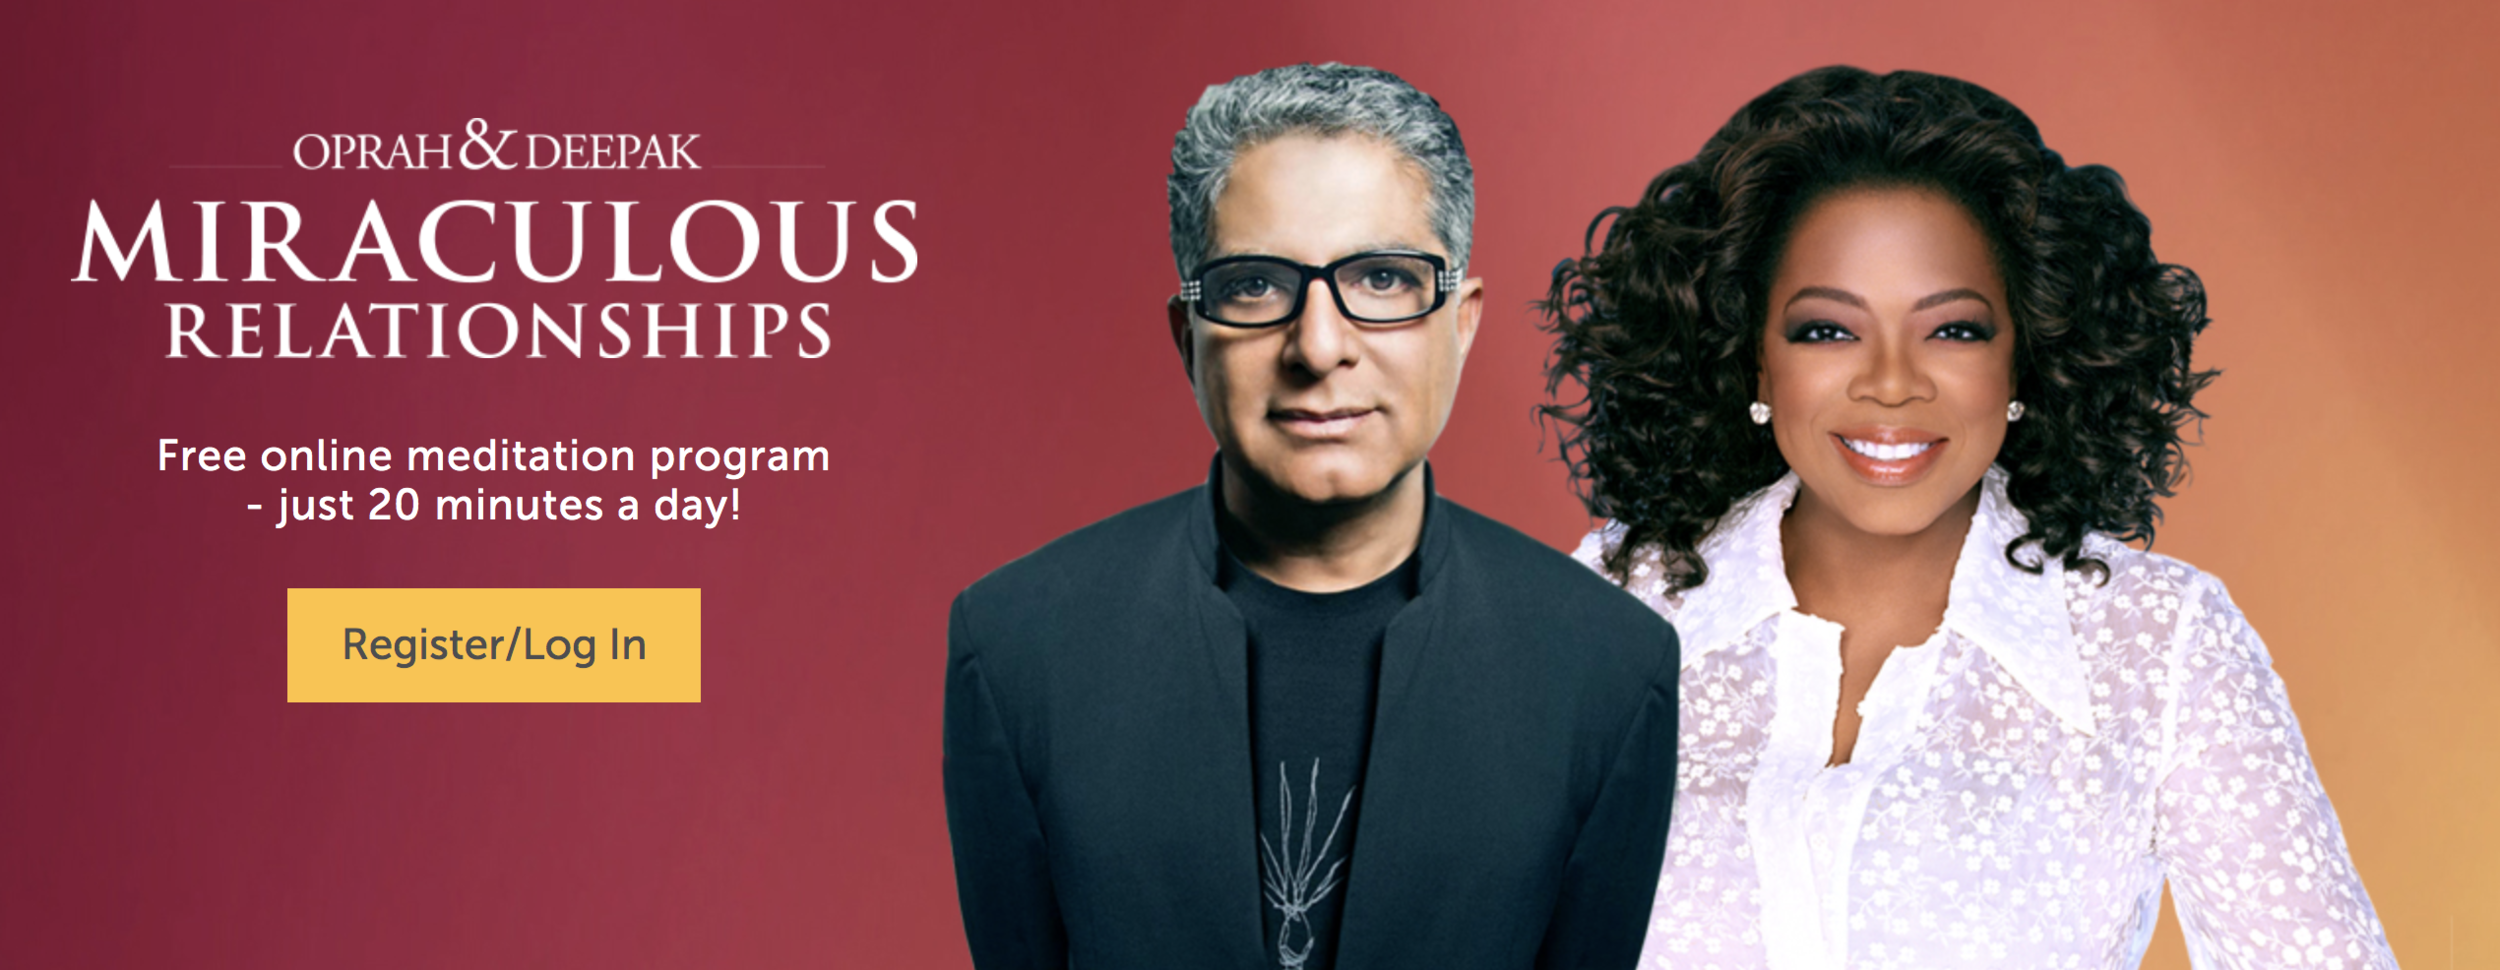 Currently Oprah and Deepak are hosting another 21 Day Free Meditation Challenge. For more info visit:  https://chopracentermeditation.com